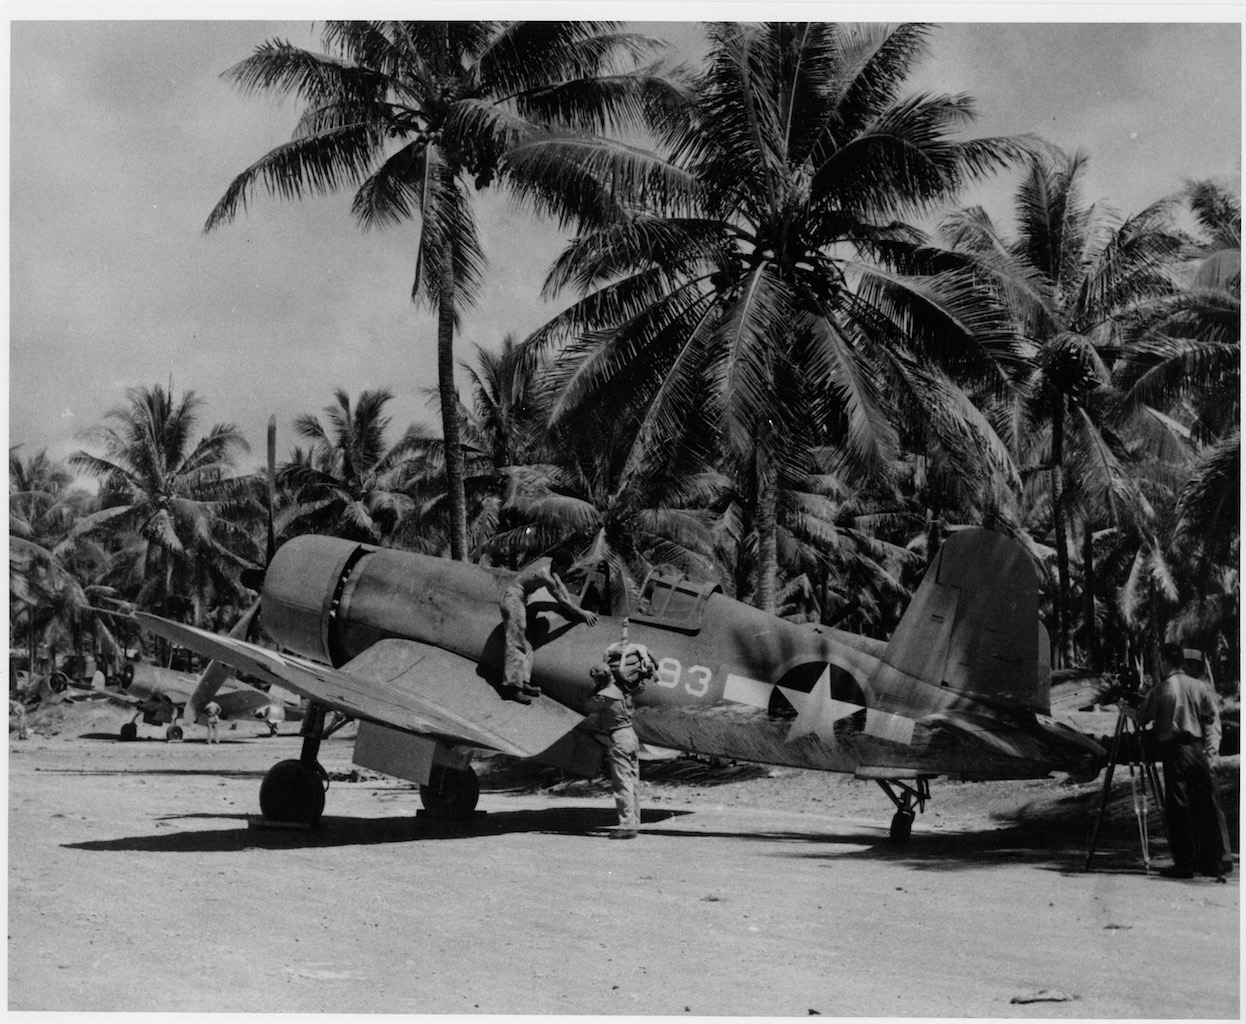 F4U-1 Corsair of 1st Lt Rolland N. Rinabarger of VMF-214, Esprito Santo 1943. ( Photo by Mike Schneider Collection)